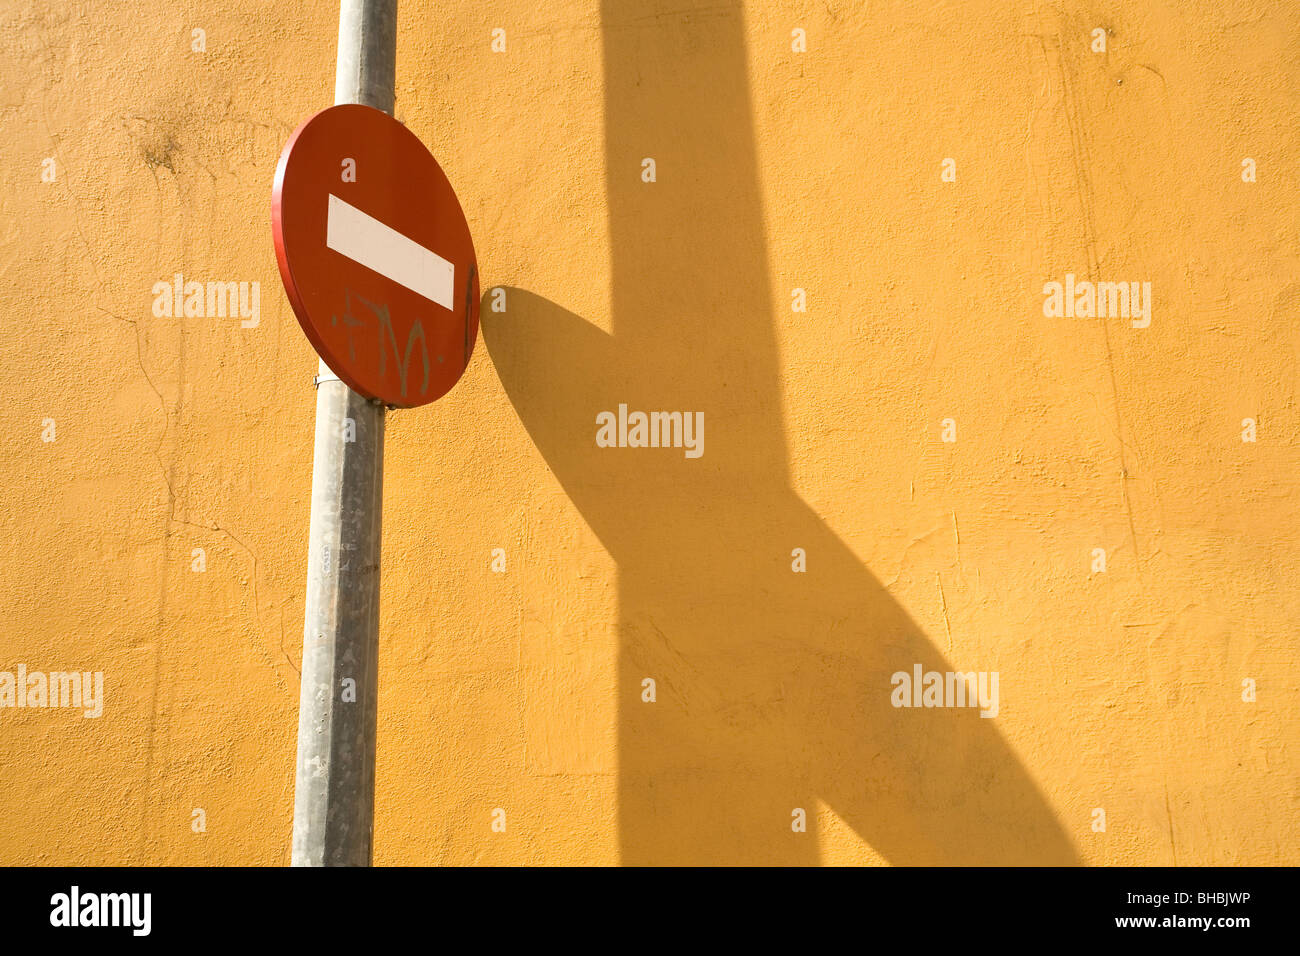 A red No Entry street sign stands next to an orange wall. The sign casts a shadow on the wall. - Stock Image